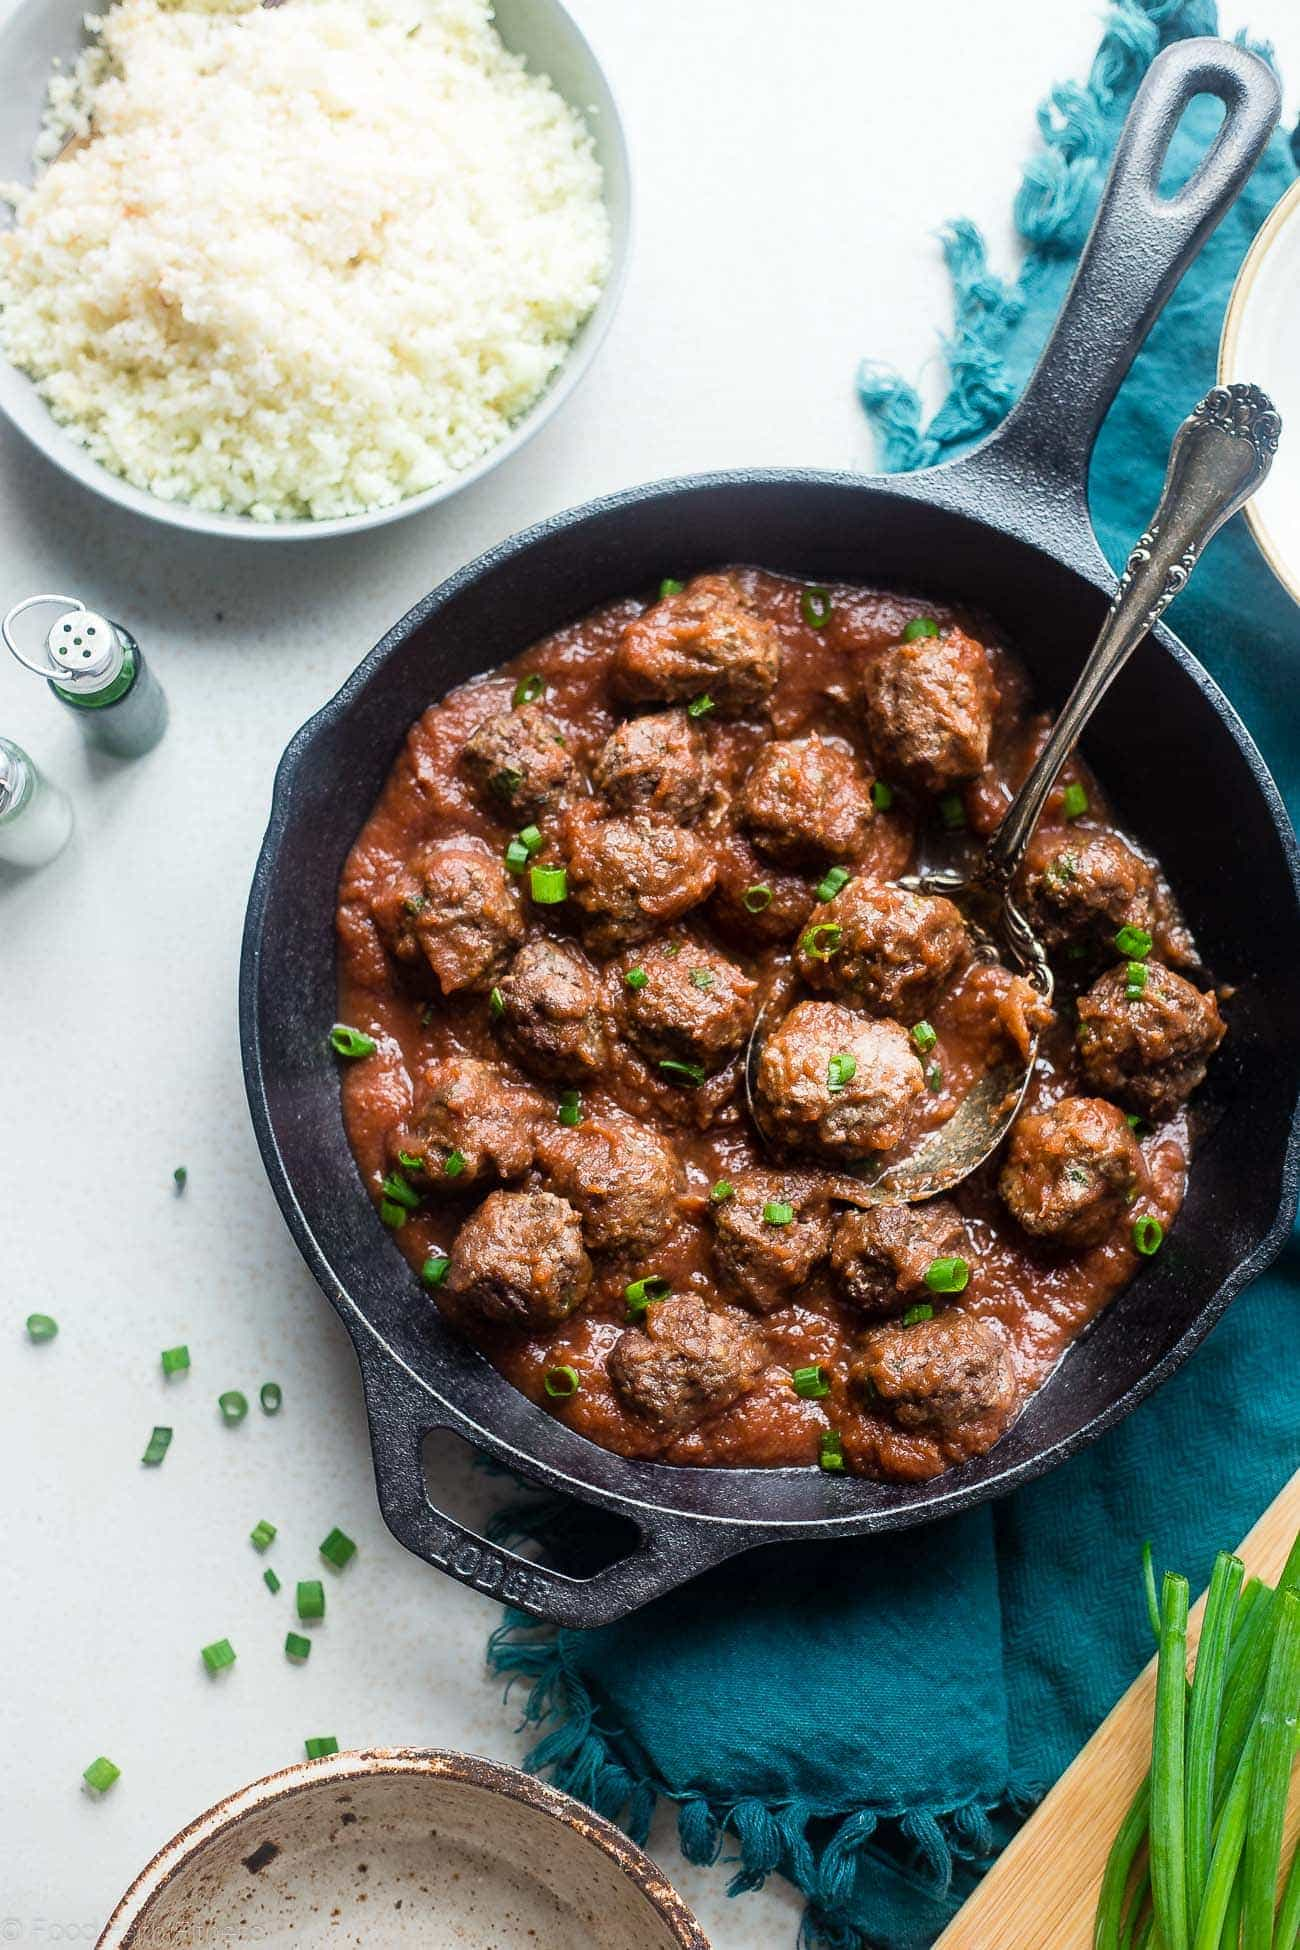 Whole30 Sweet and Sour Paleo Meatballs - These easy paleo meatballs are a healthy remake of a classic recipe that is gluten free and whole30 complaint! They're a weeknight meal that everyone will love! | Foodfaithfitness.com | @FoodFaithFit